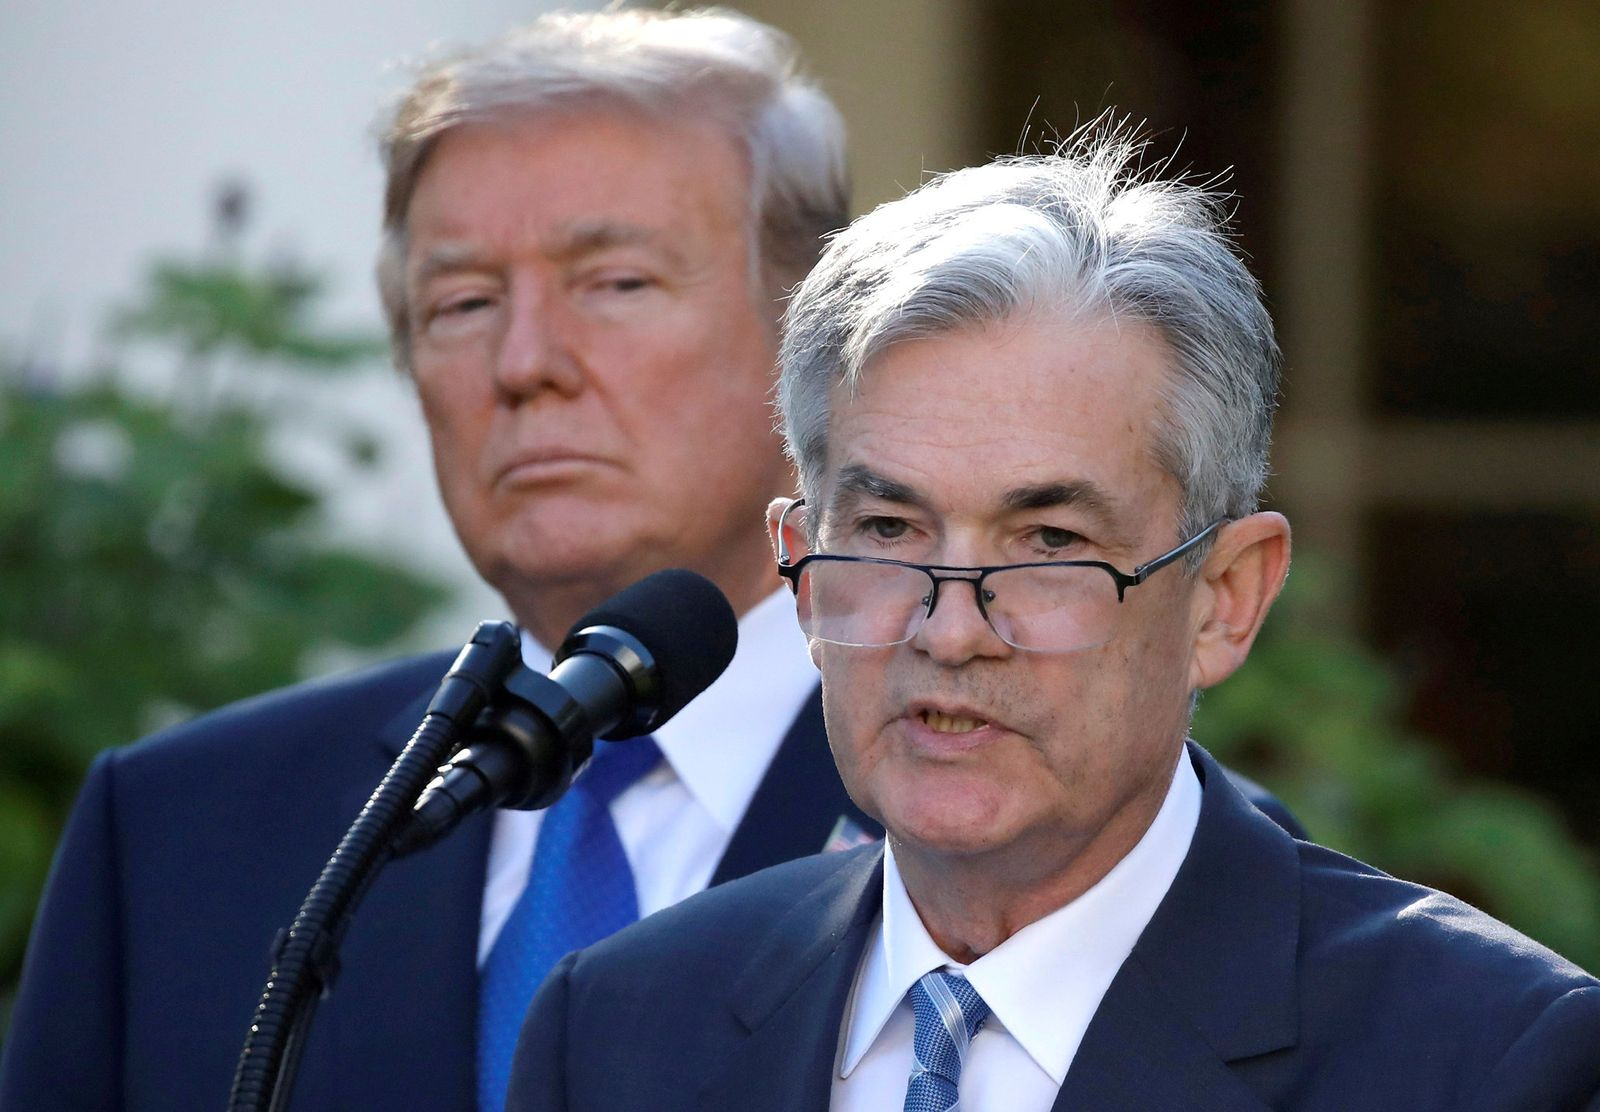 USA-TRUMP/FED